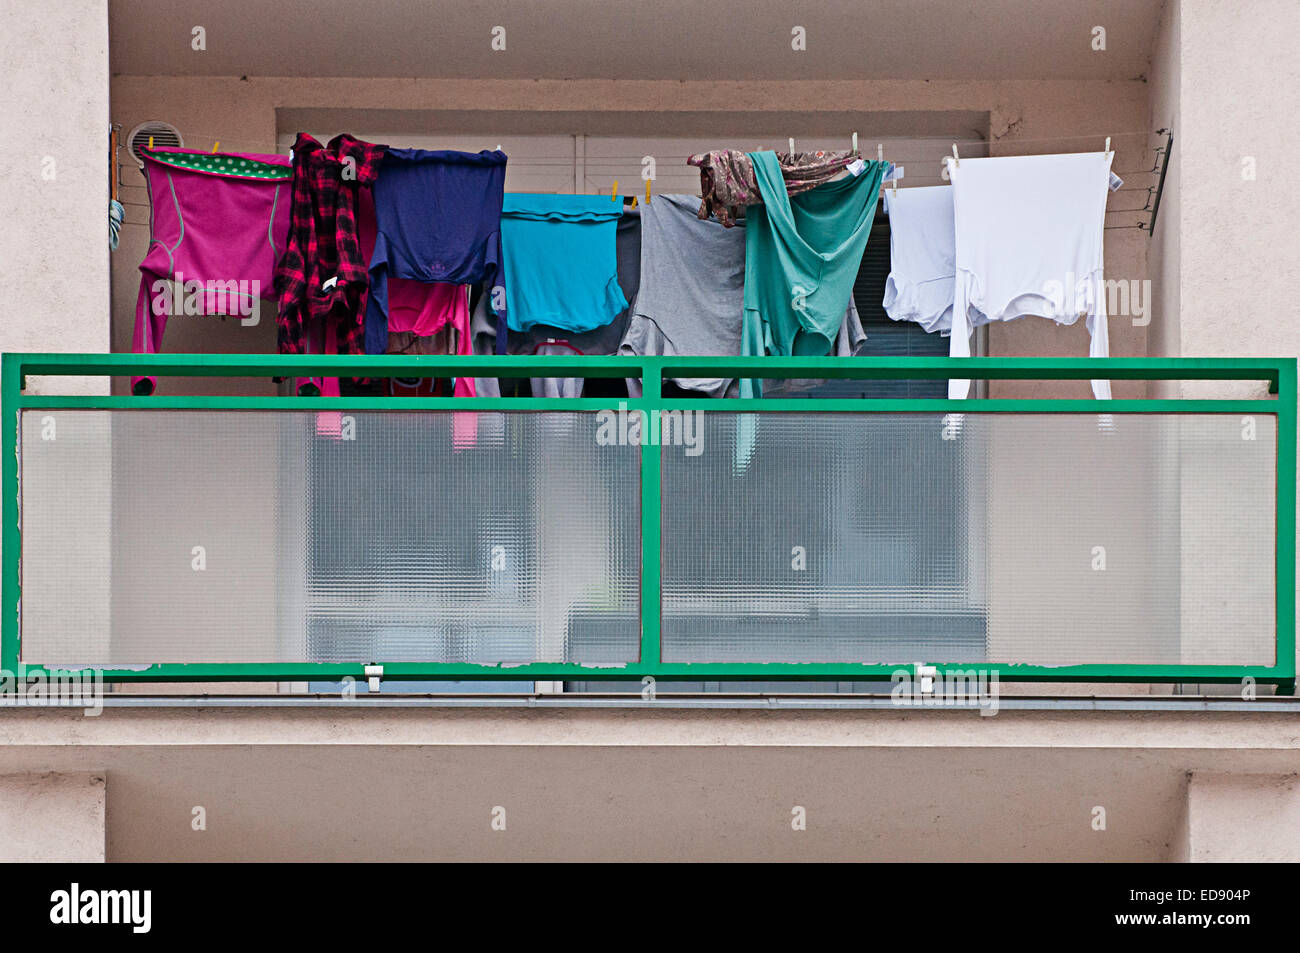 balcony of a popular apartments building, with laundry hanging to dry - Stock Image